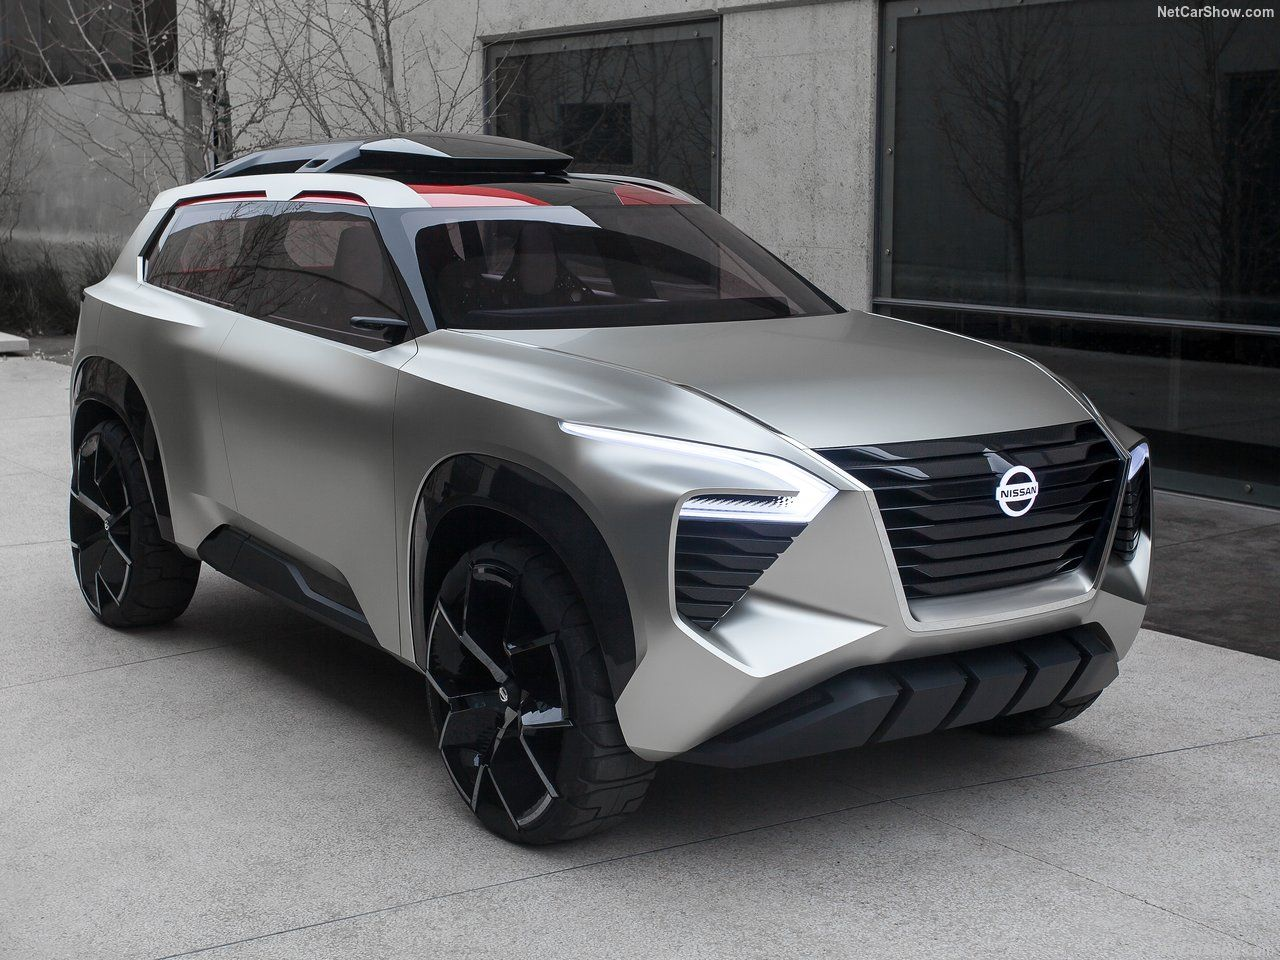 In The Days When Electric Vehicles Were Introduced One Behind The Other And Ready To Have A Significant Market Share In The Market Futuristic Cars Nissan Suv